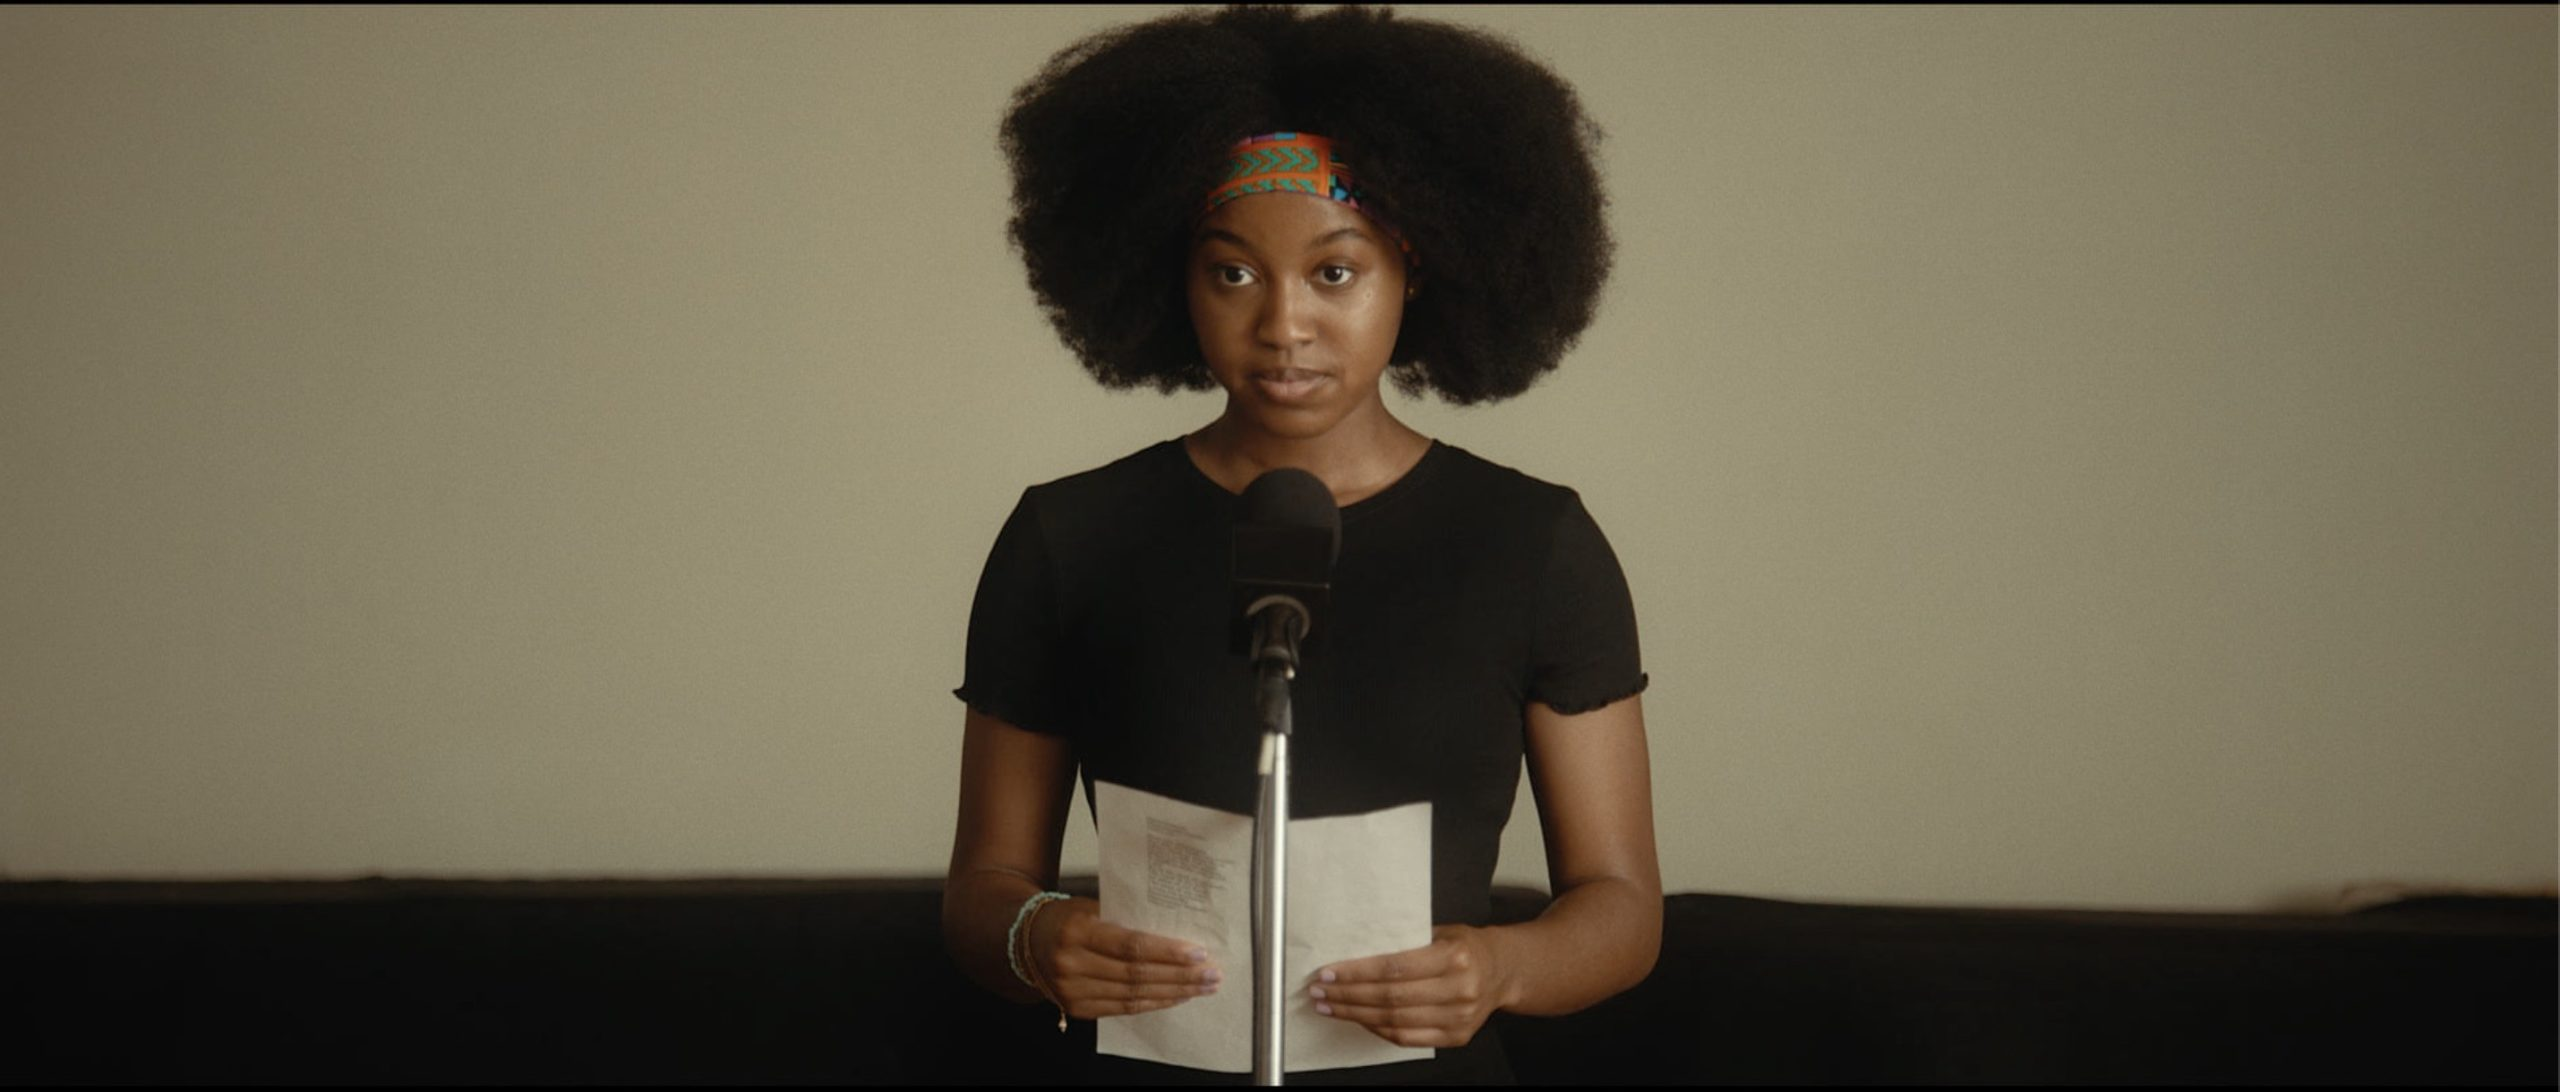 Kai stands in front of a microphone, holding a sheet of paper. She wears a black T-shirt and a headband, and wears her hair as an afro.